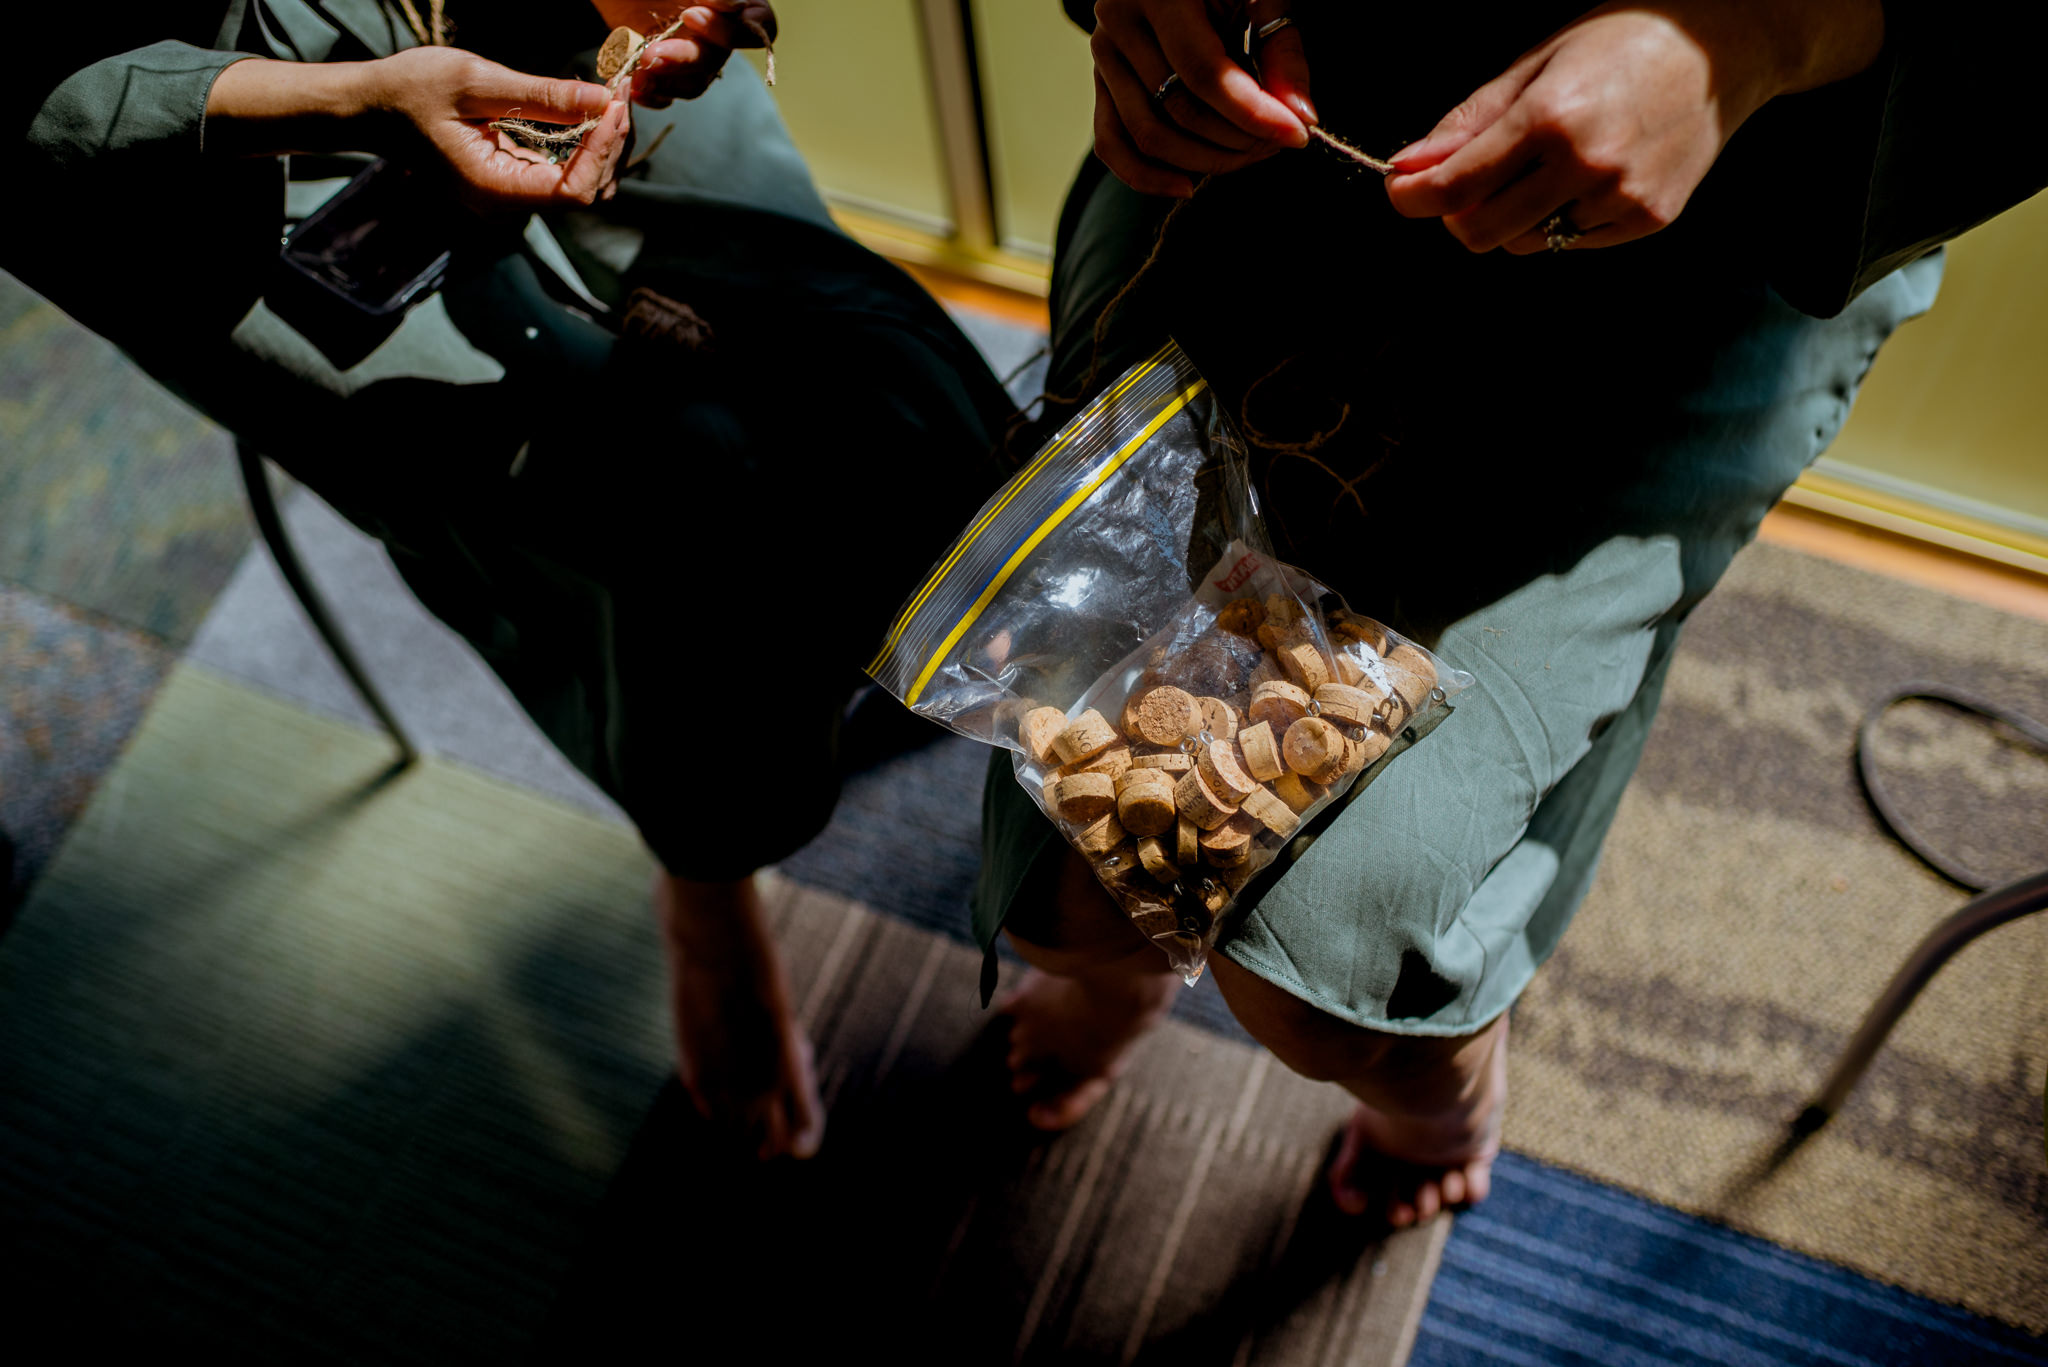 Two women tying string on corks with a bag of corks on one of their laps